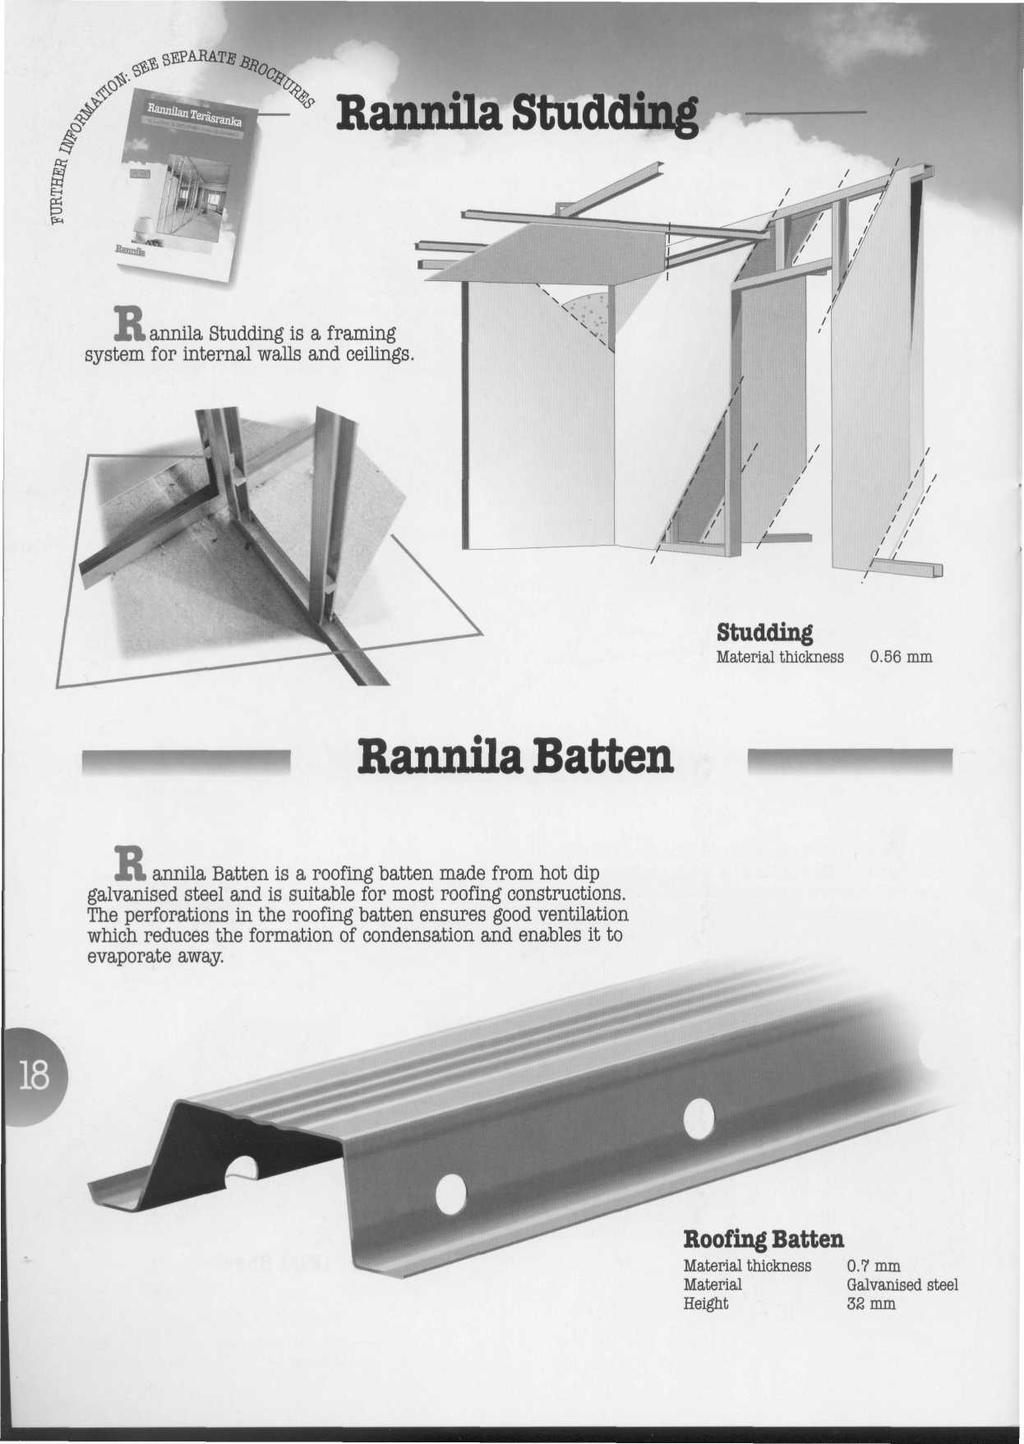 Rannila Studding. annila Studding is a framing system for internal walls and ceilings. Studding Material thickness 0.